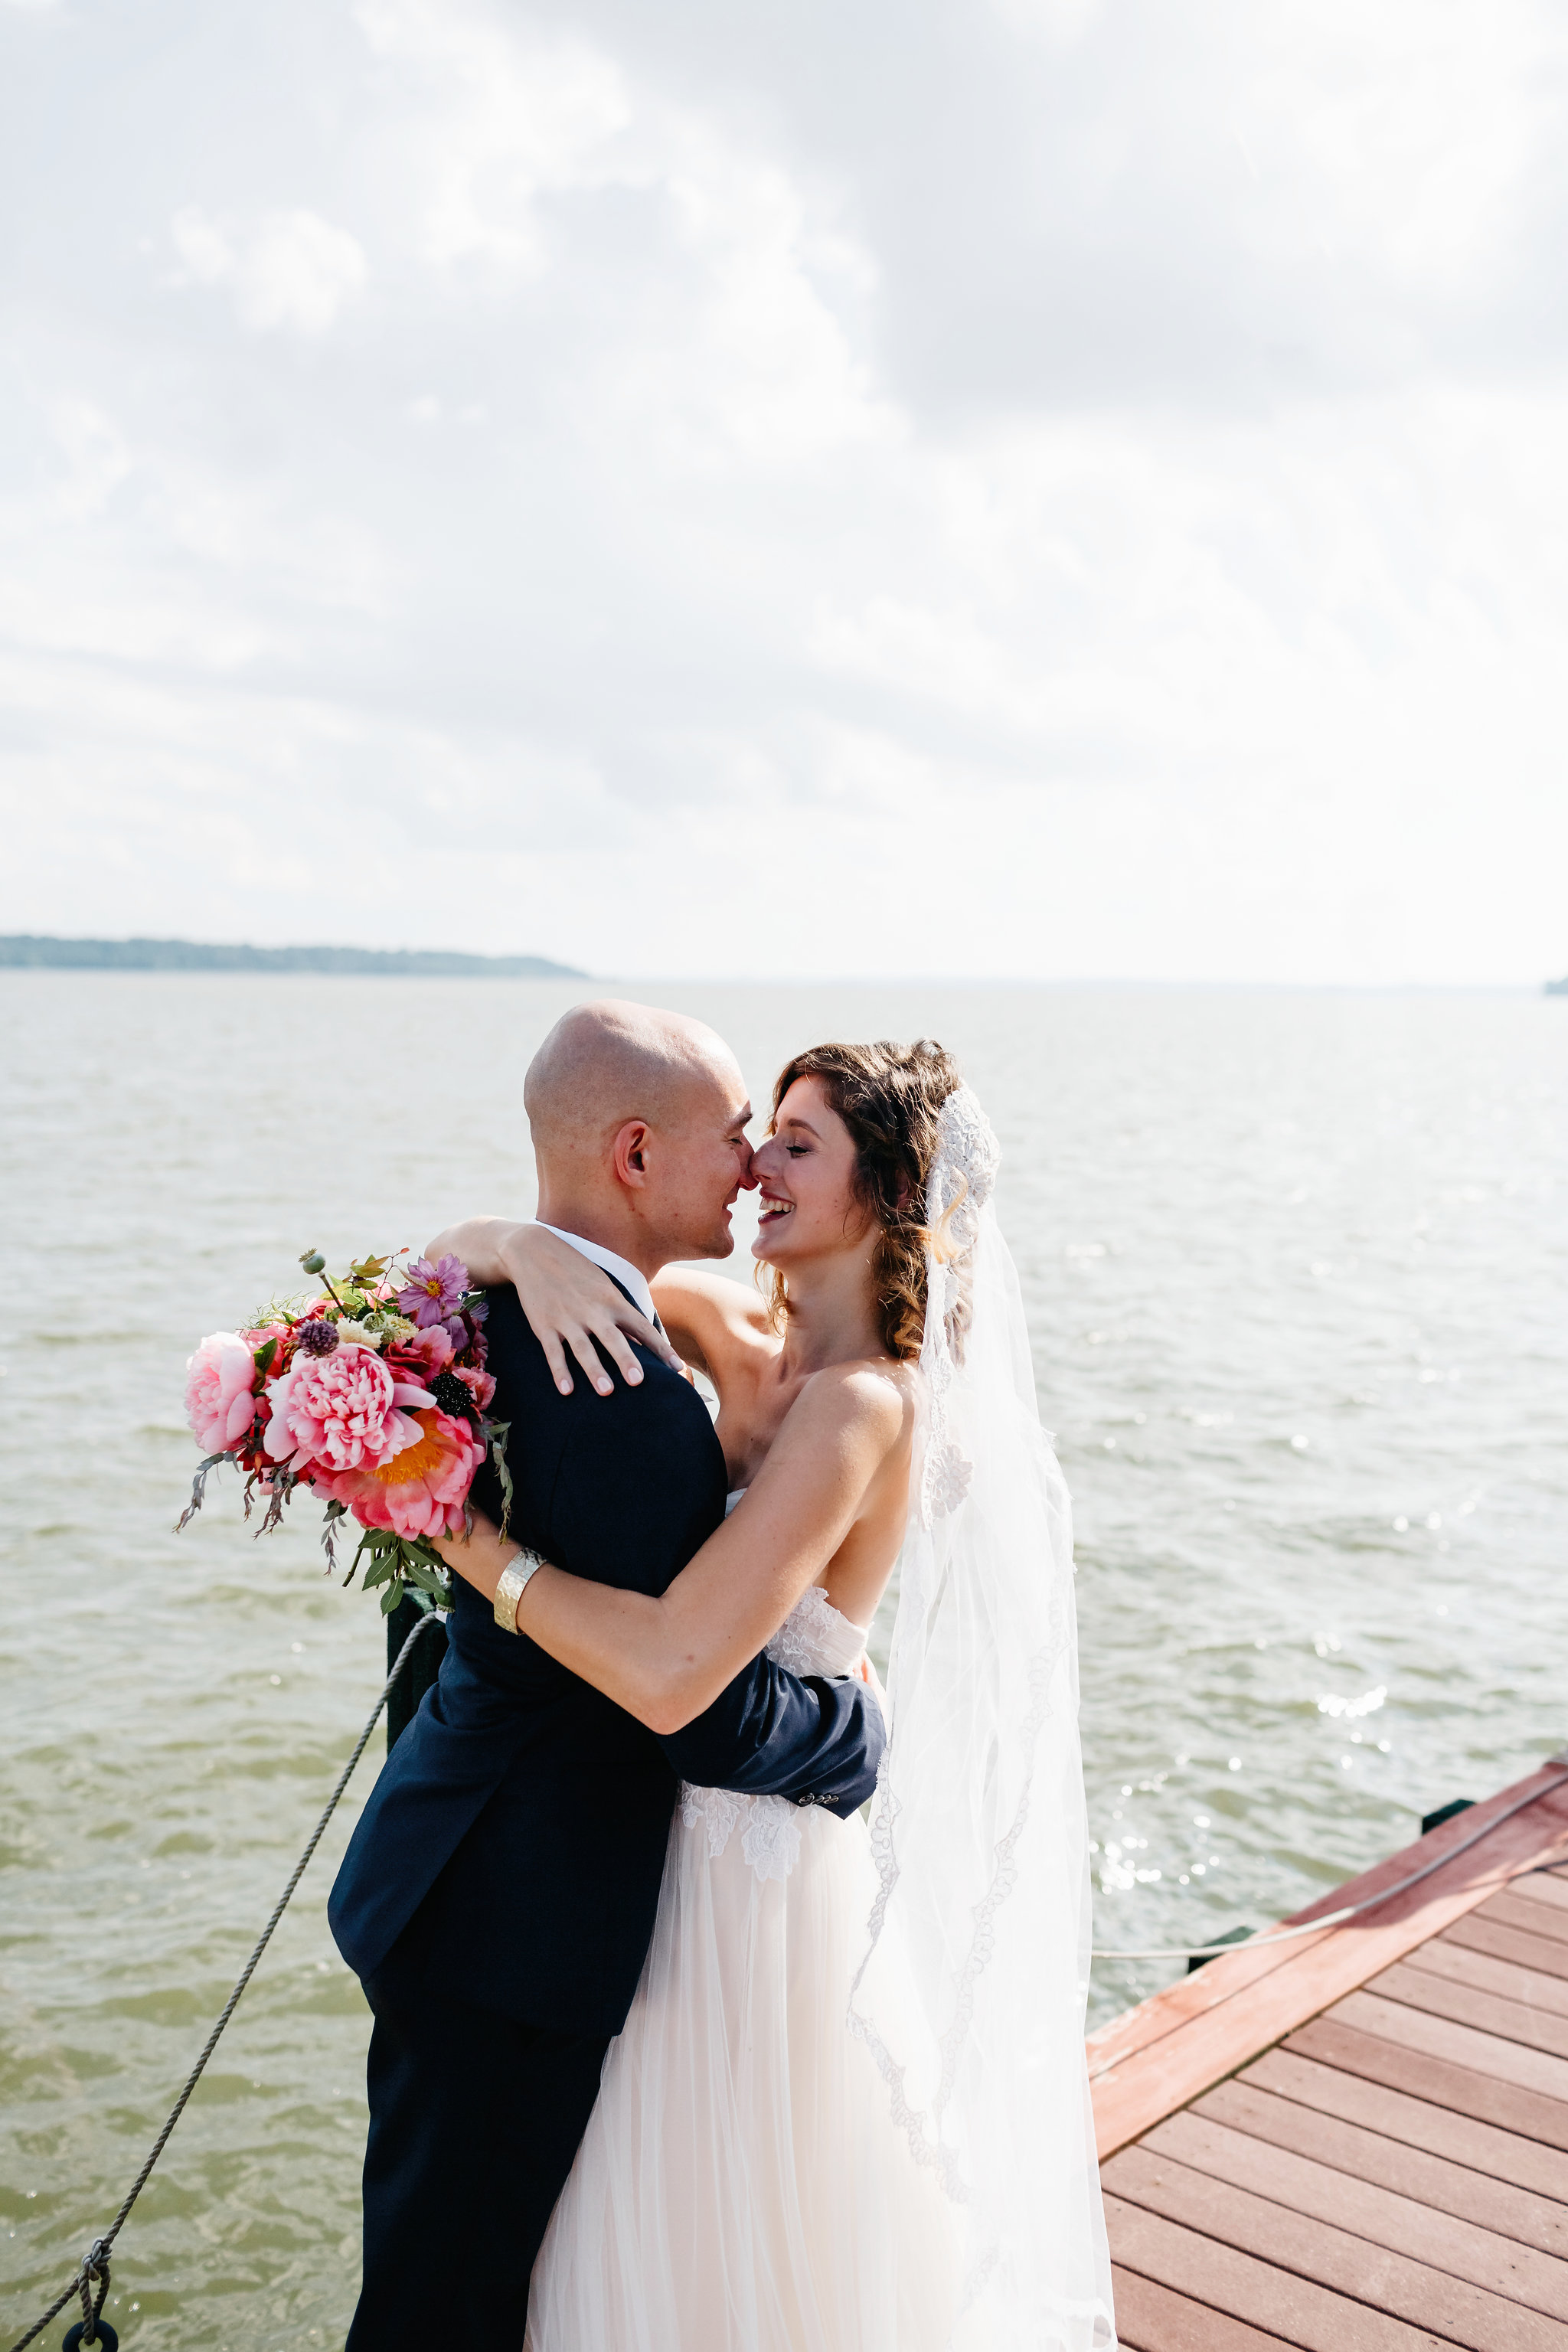 Maria&Dave2017-07-28at9.36.58AM21.jpg